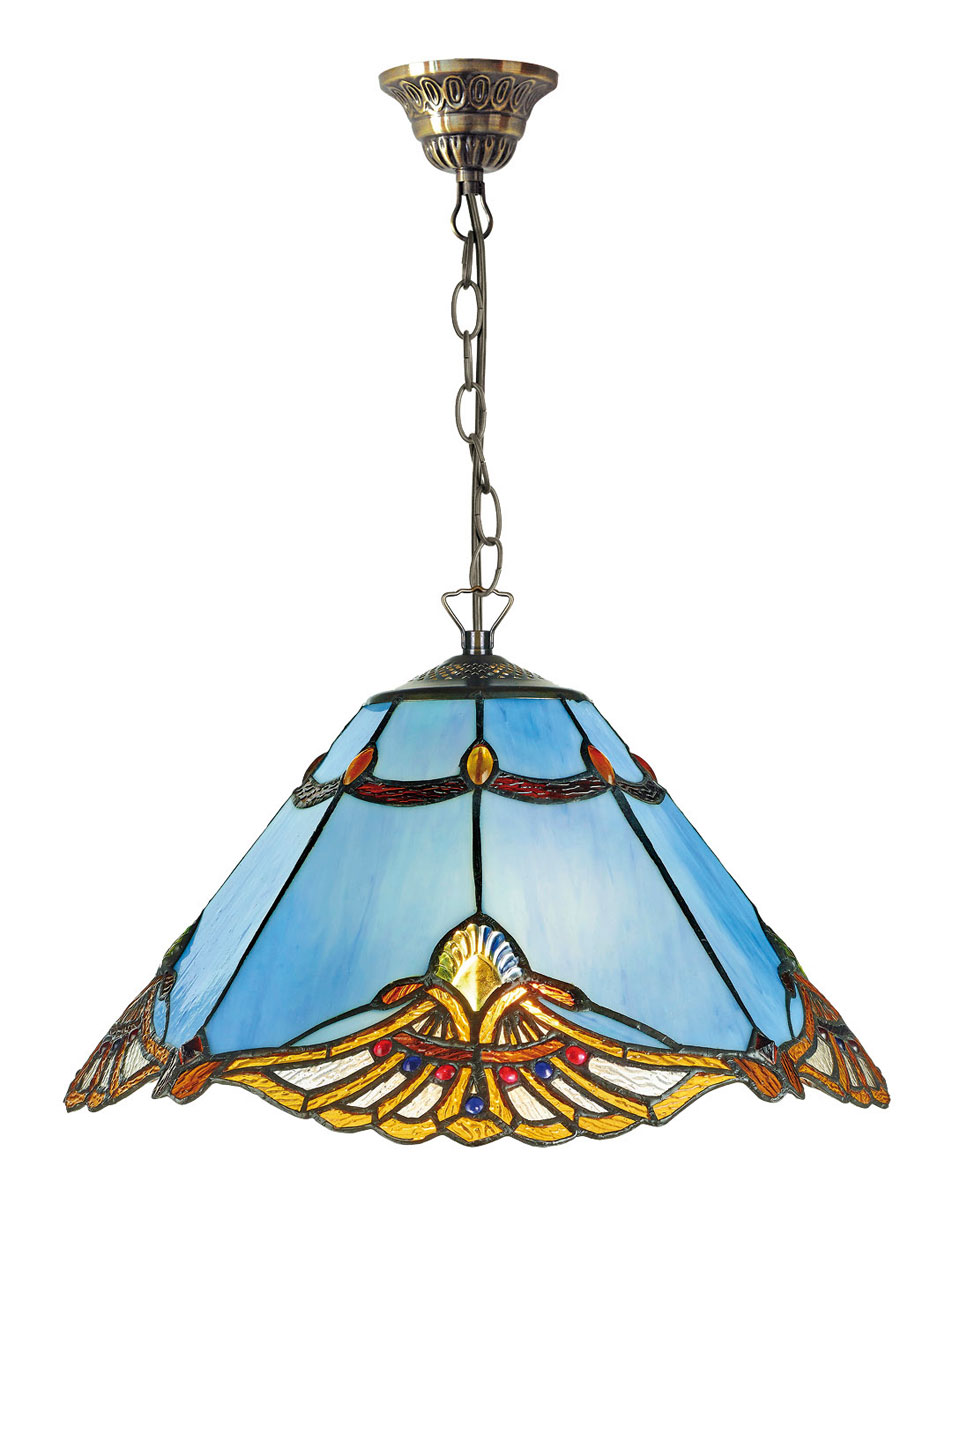 Suspension Tiffany bleue. Artistar.